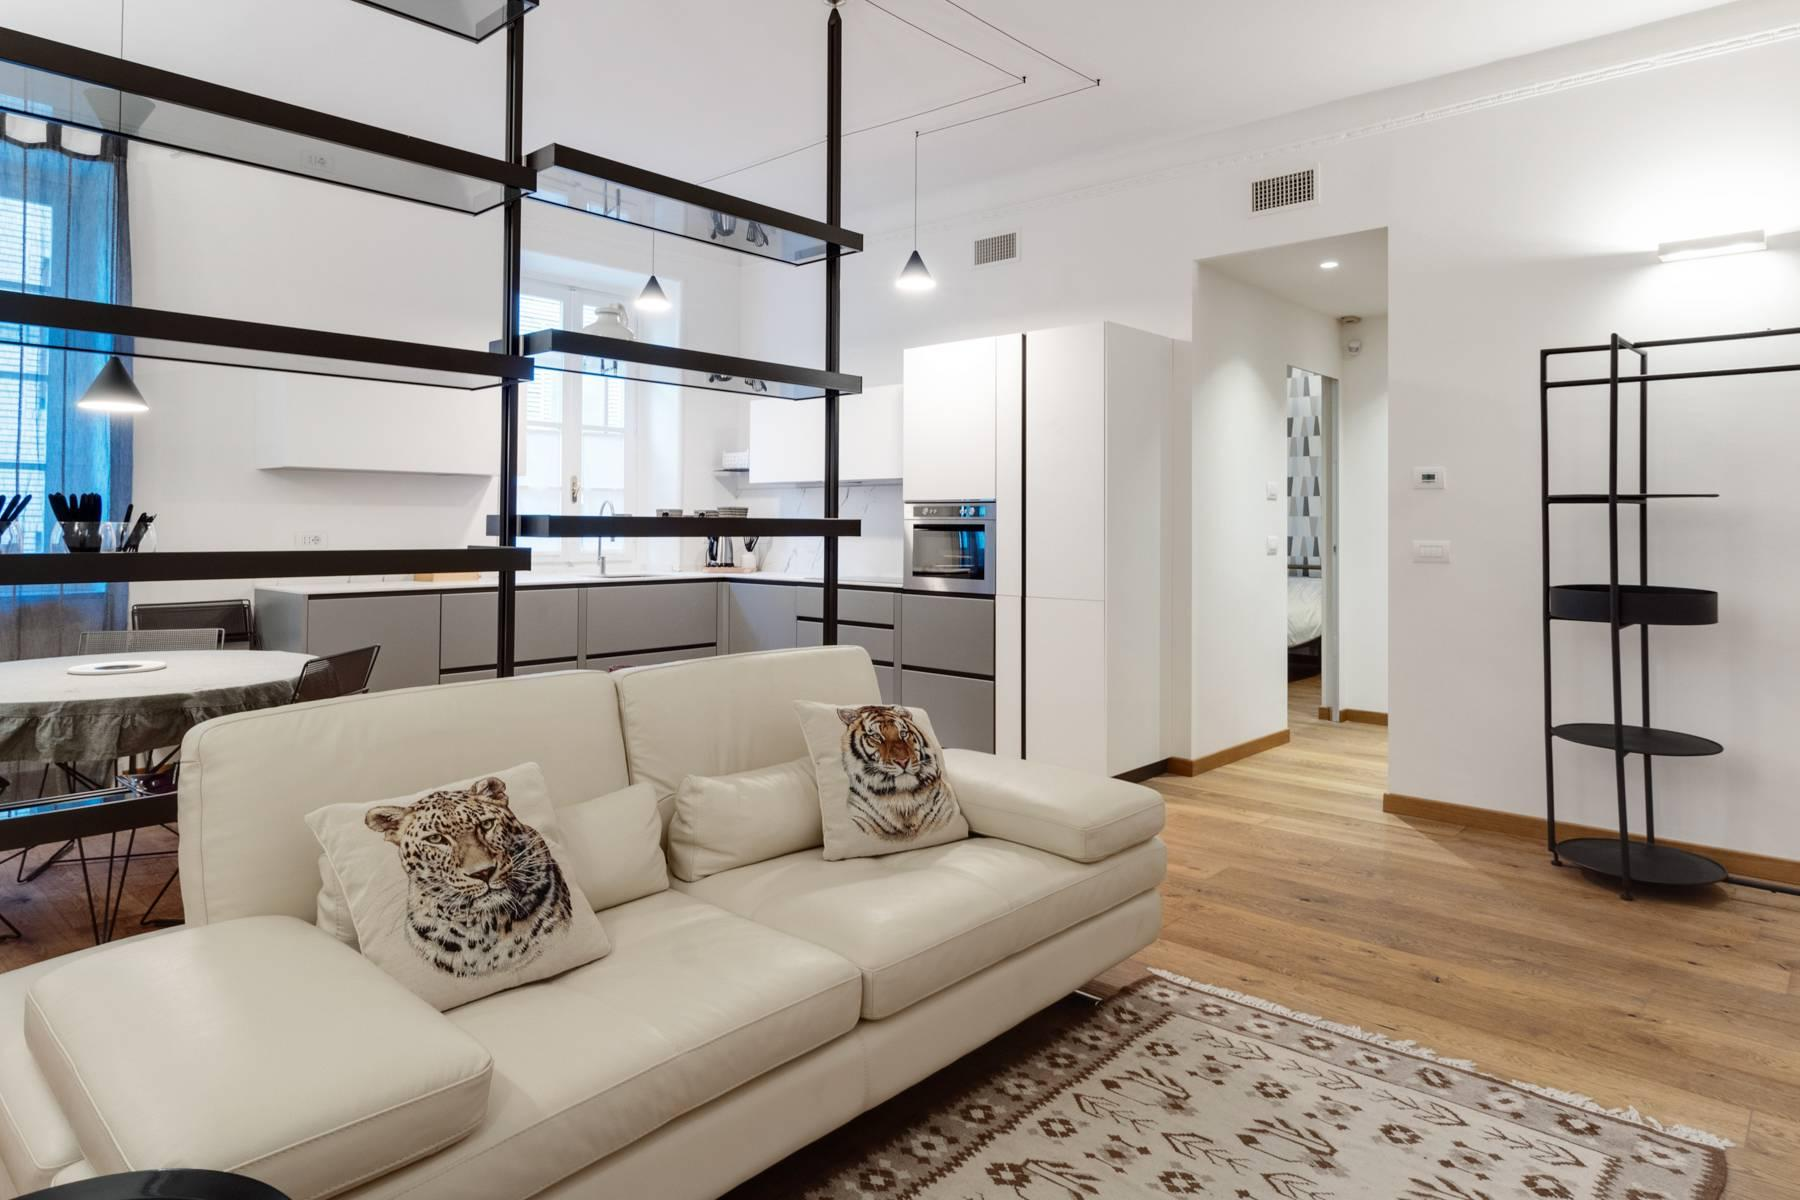 New apartment fully furnished in the center of Turin - 1